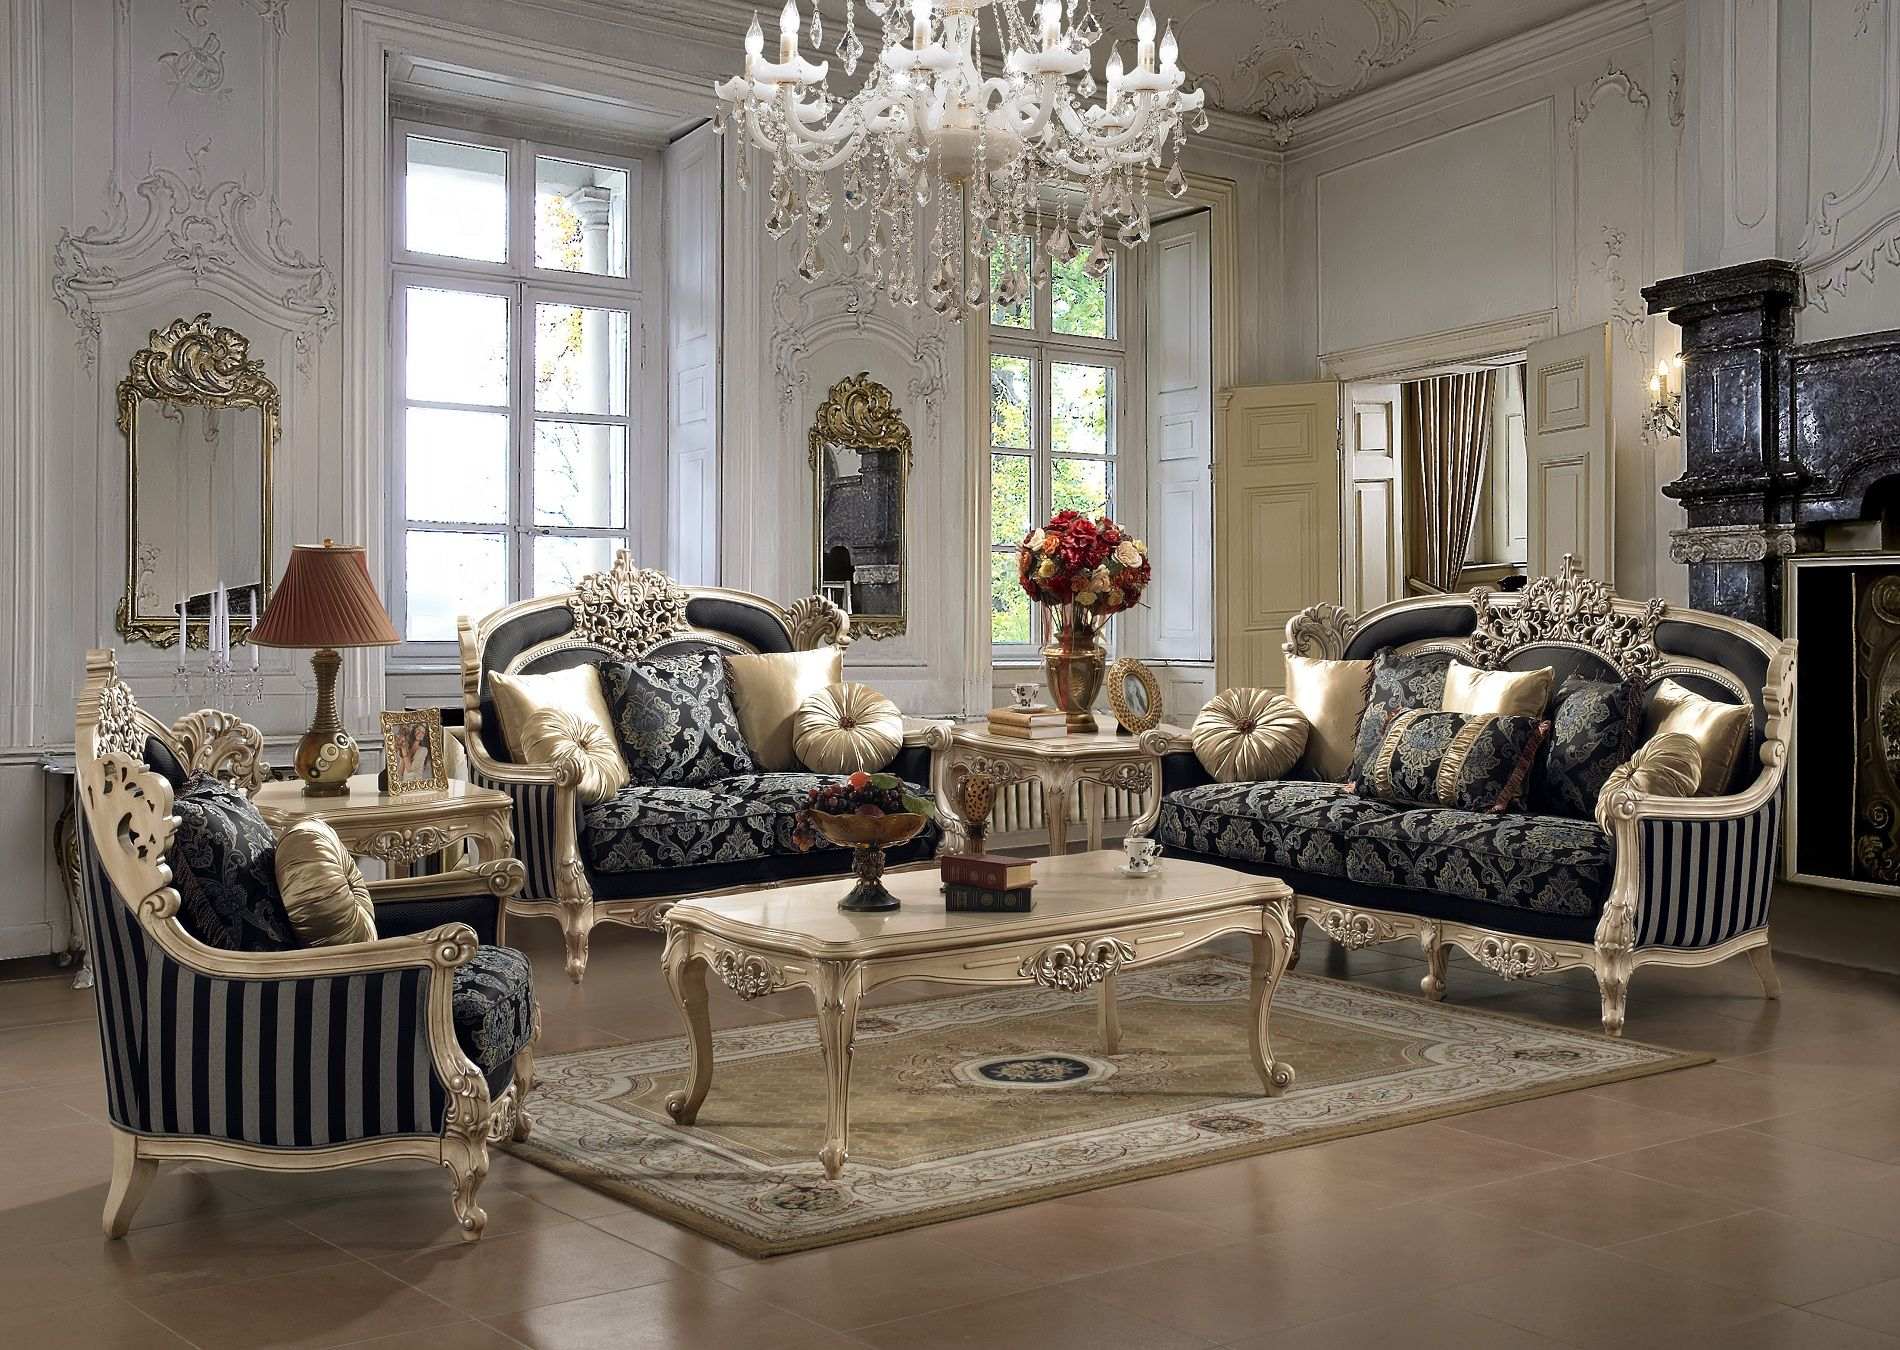 Luxury Living Rooms Furniture Unique 69 Best Living Room Images On Pinterest  Loveseats Sofas And . Inspiration